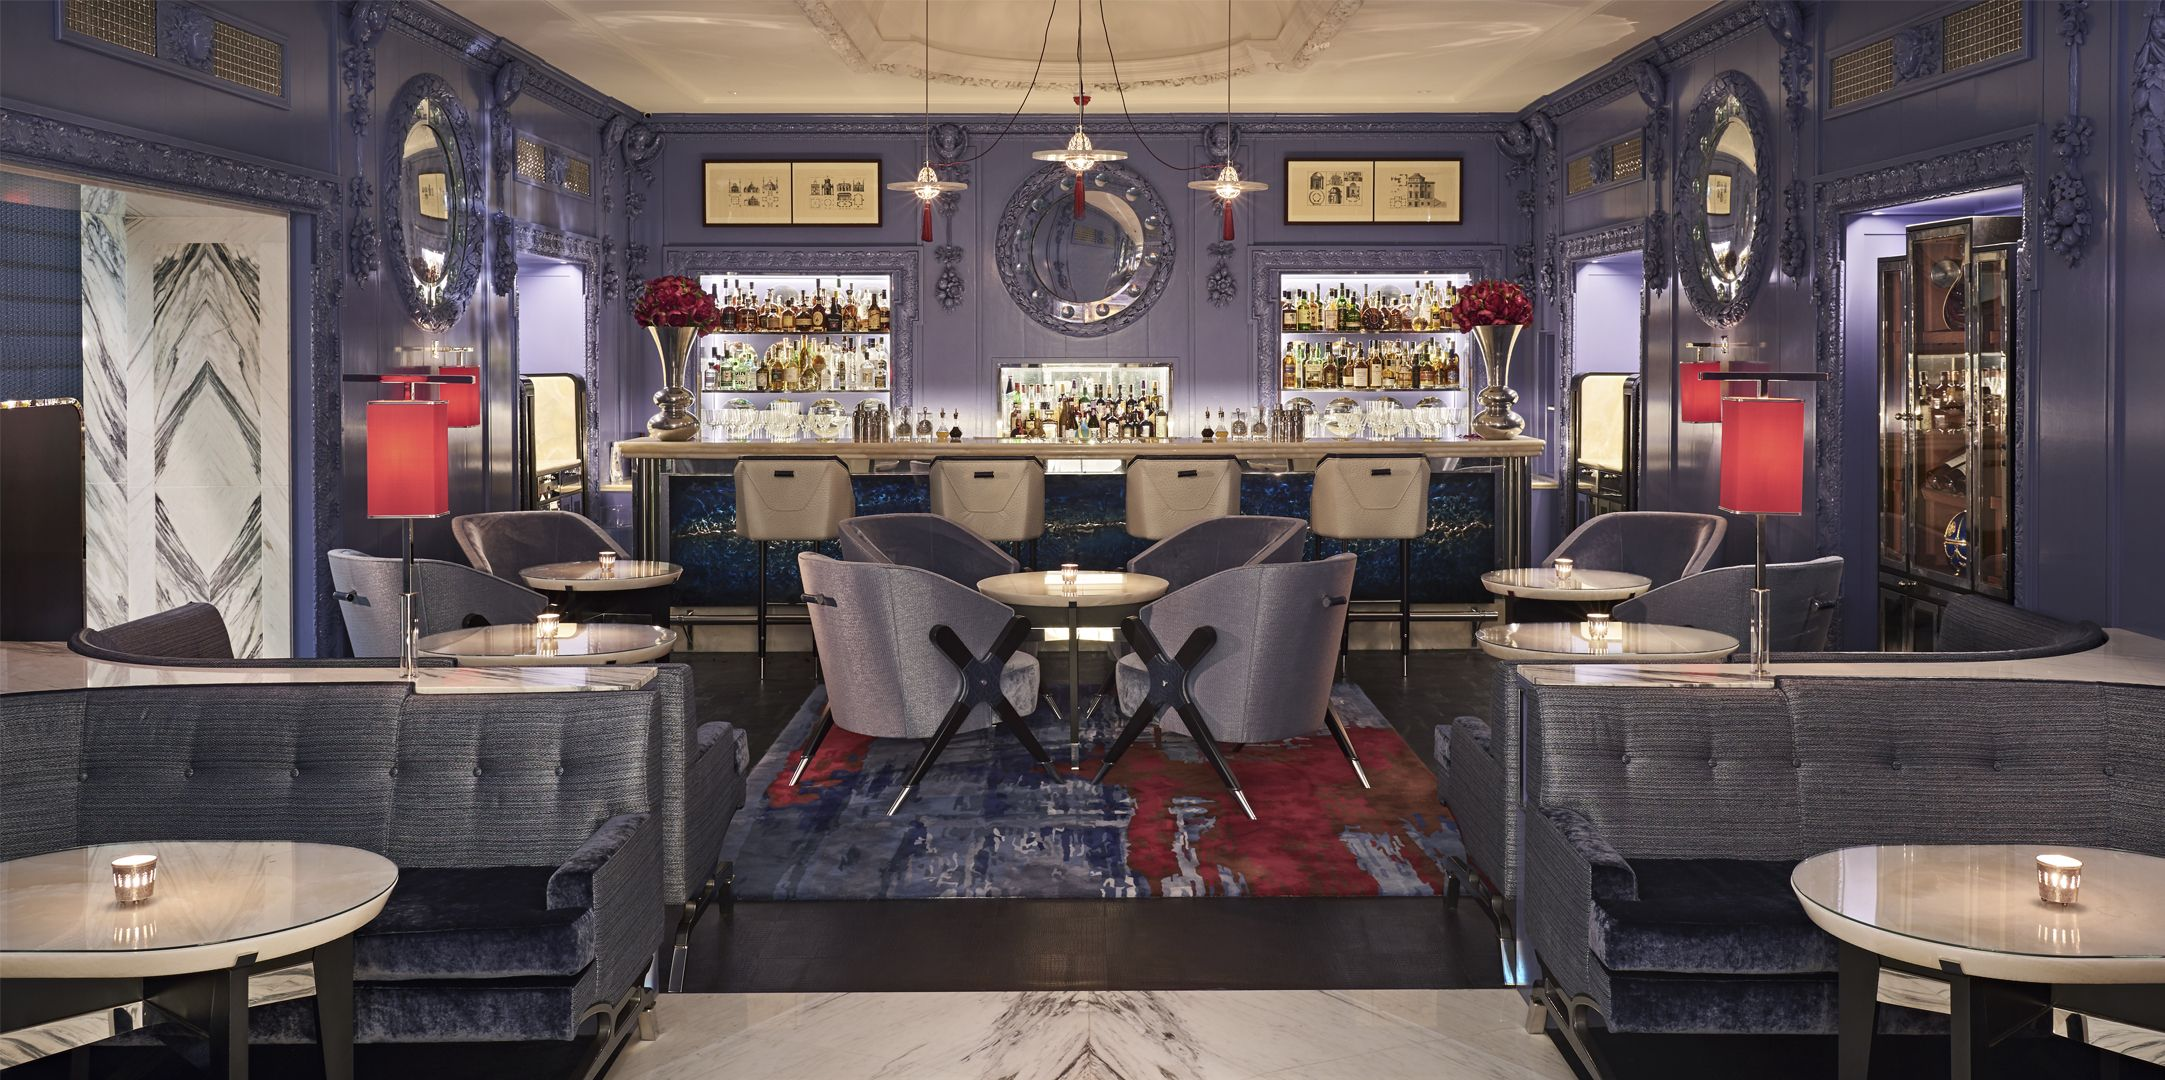 BLUE BAR By Loomah Bespoke Carpets & Rugs